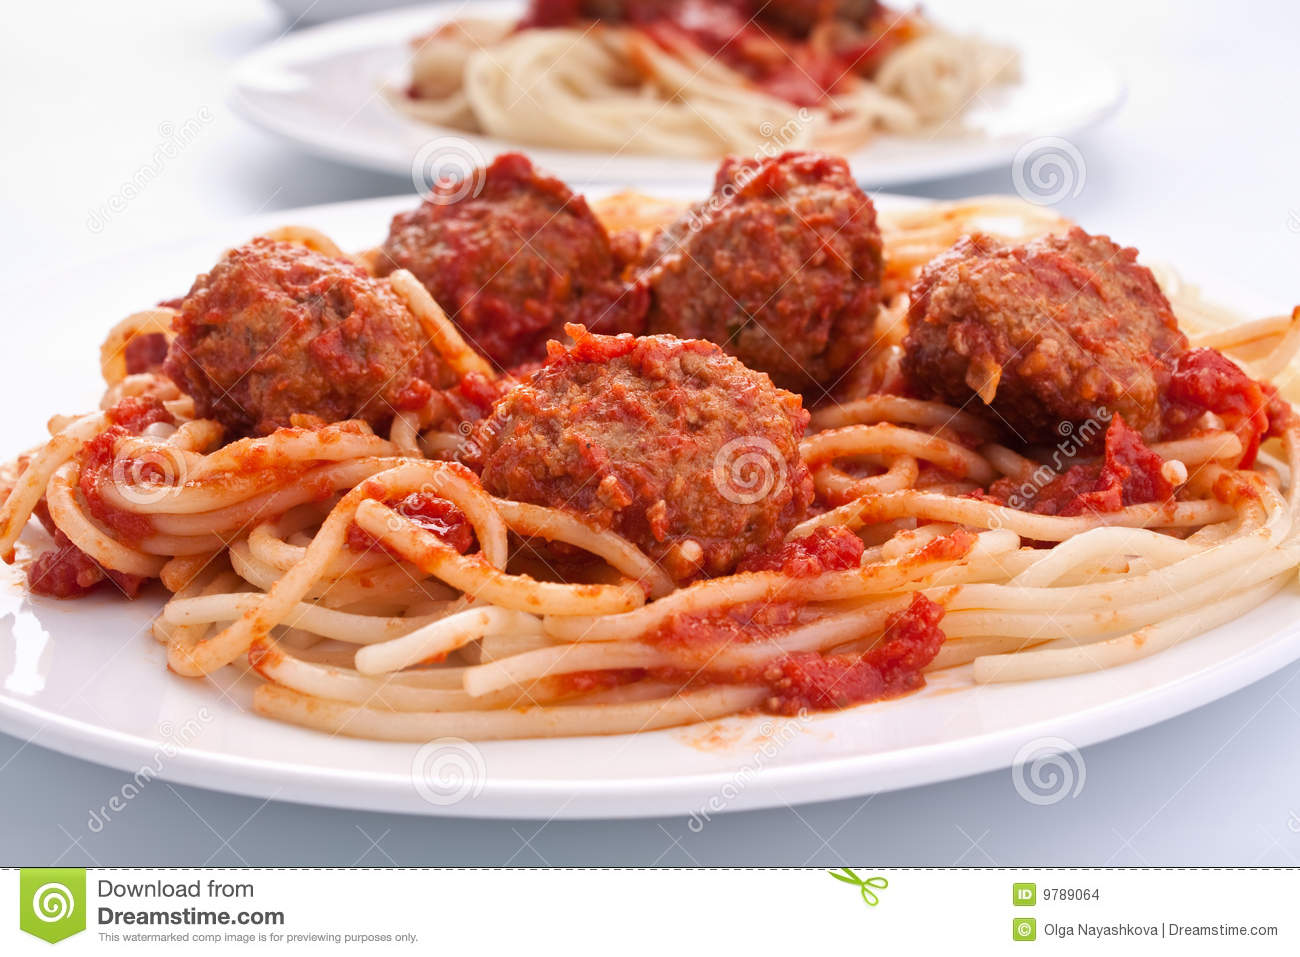 Spaghetti With Meatballs In Tomato Sauce Stock Images - Image: 9789064